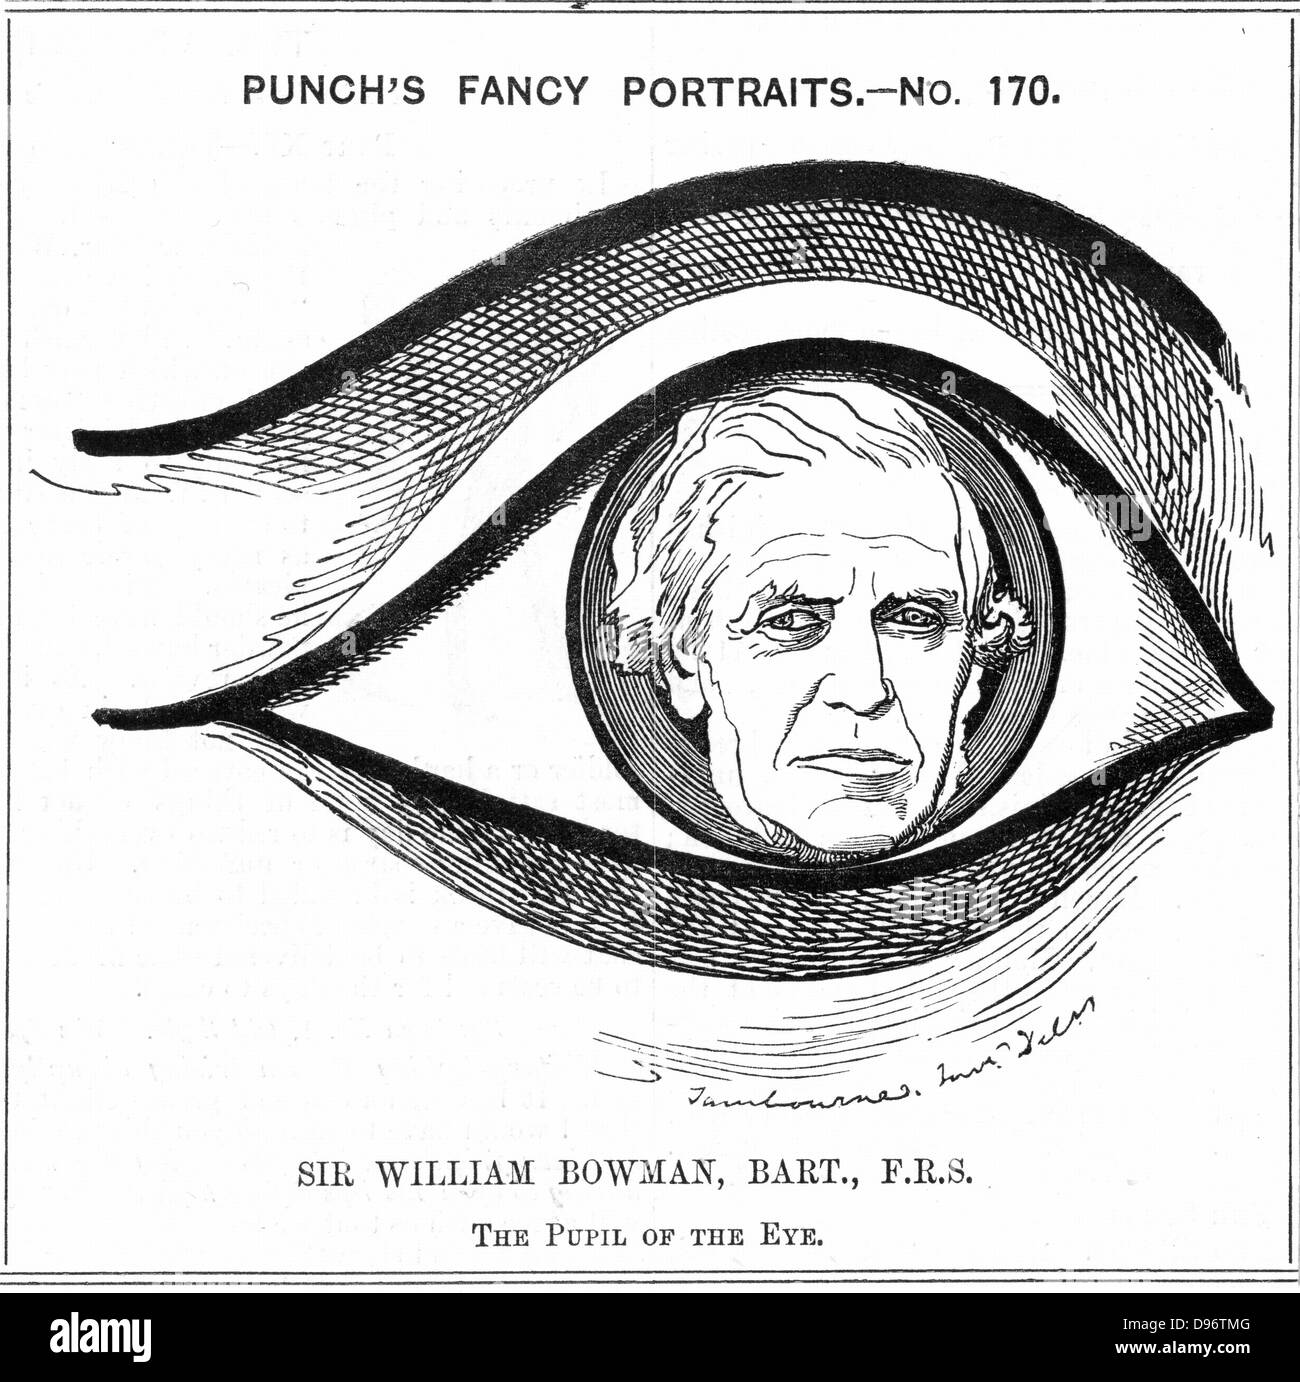 William Bowman (1816- 1892) English anatomist, surgeon and ophthalmologist  was born at Nantwich, Cheshire. After five years at